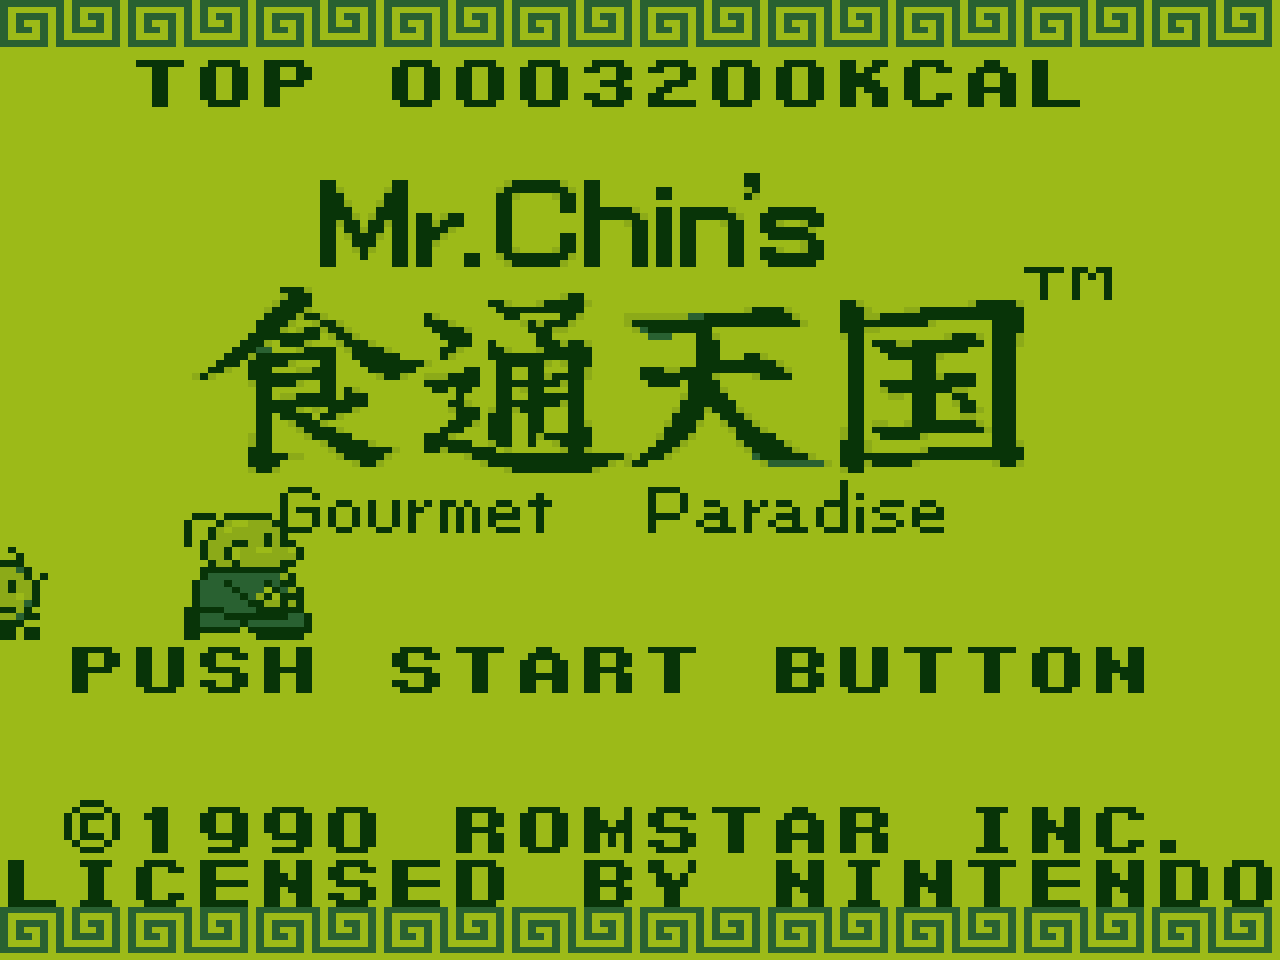 https://s3.eu-west-3.amazonaws.com/games.anthony-dessalles.com/Mr Chin's Gourmet Paradise GB 2020 - Screenshots/Mr Chin's Gourmet Paradise-201113-173204.png